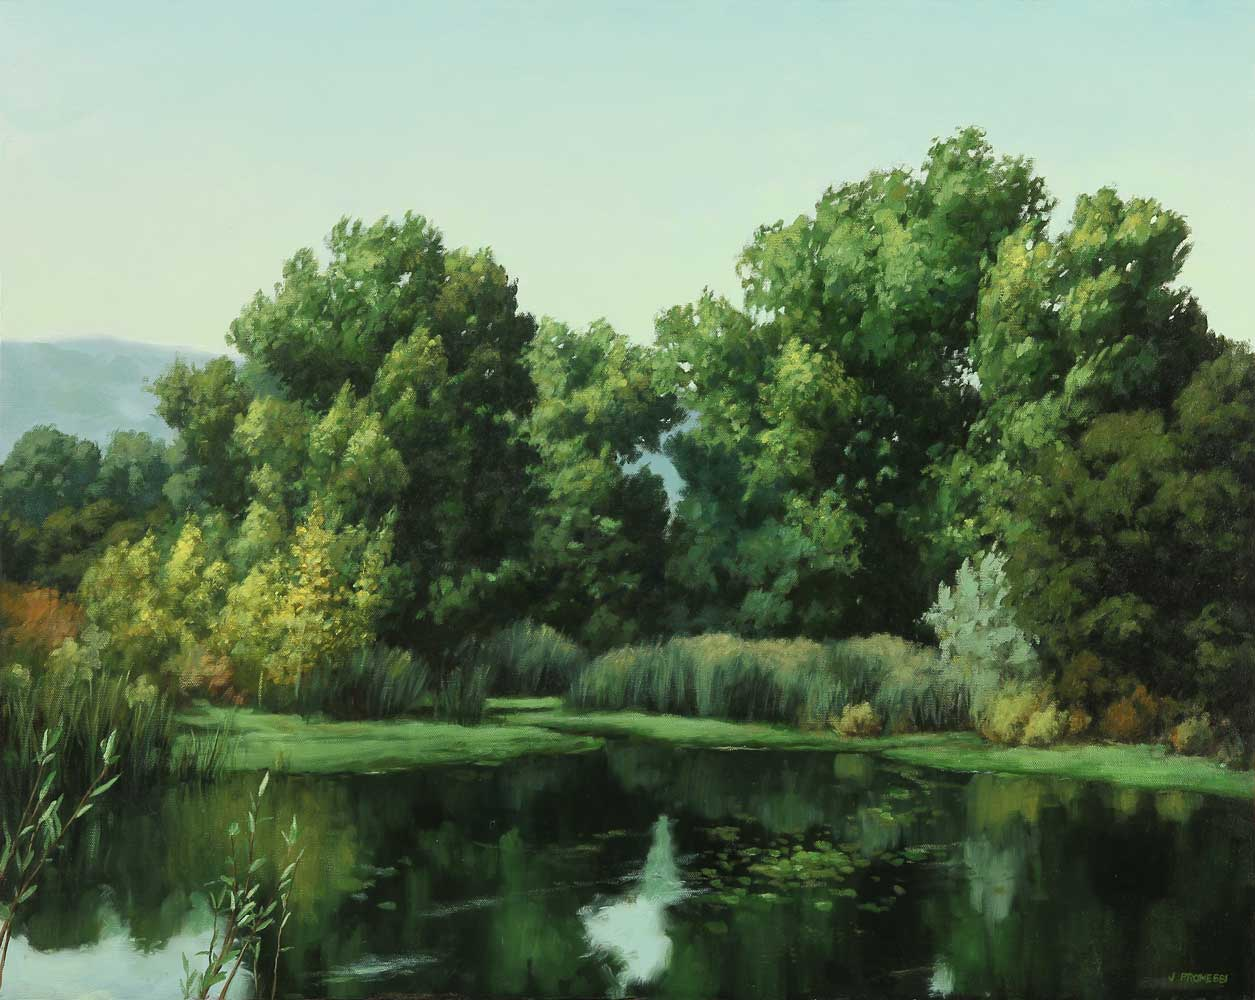 Coyote Creek Cottonwoods, landscape painting by Promessi